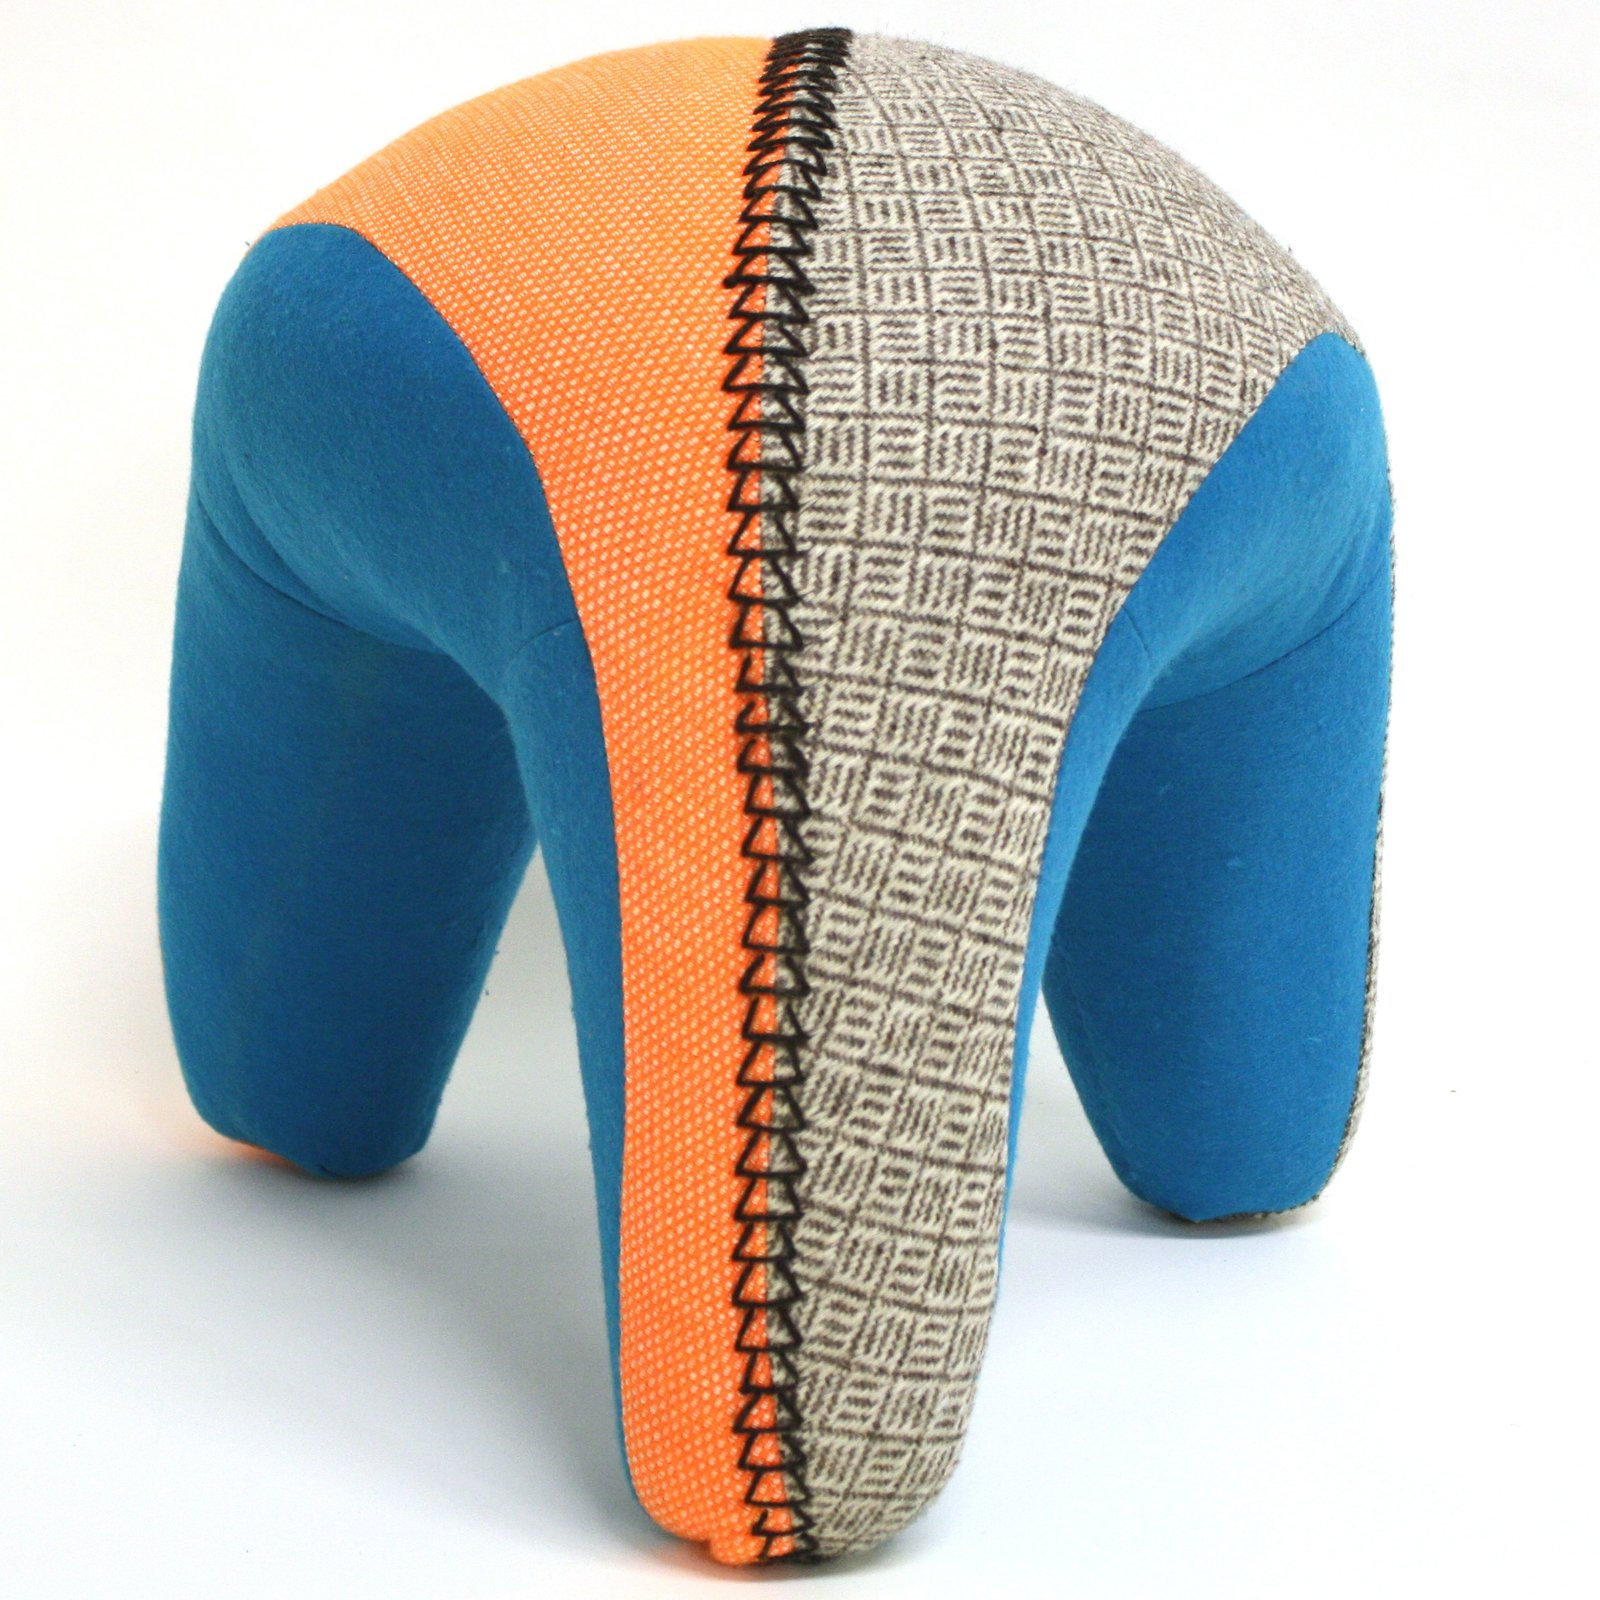 """Tanya Aguiñiga  Tanya Aguiñiga created the Chiapas stool after working with Mayan weavers in Mexico. """"The women create beautiful animals out of hand woven fabrics,"""" Aguiñiga says. """"These stools are inspired by the animals and are hand-woven fabric with a wool felt bottom.""""  Los Angeles Designers at Milan Design Week by Diana Budds"""